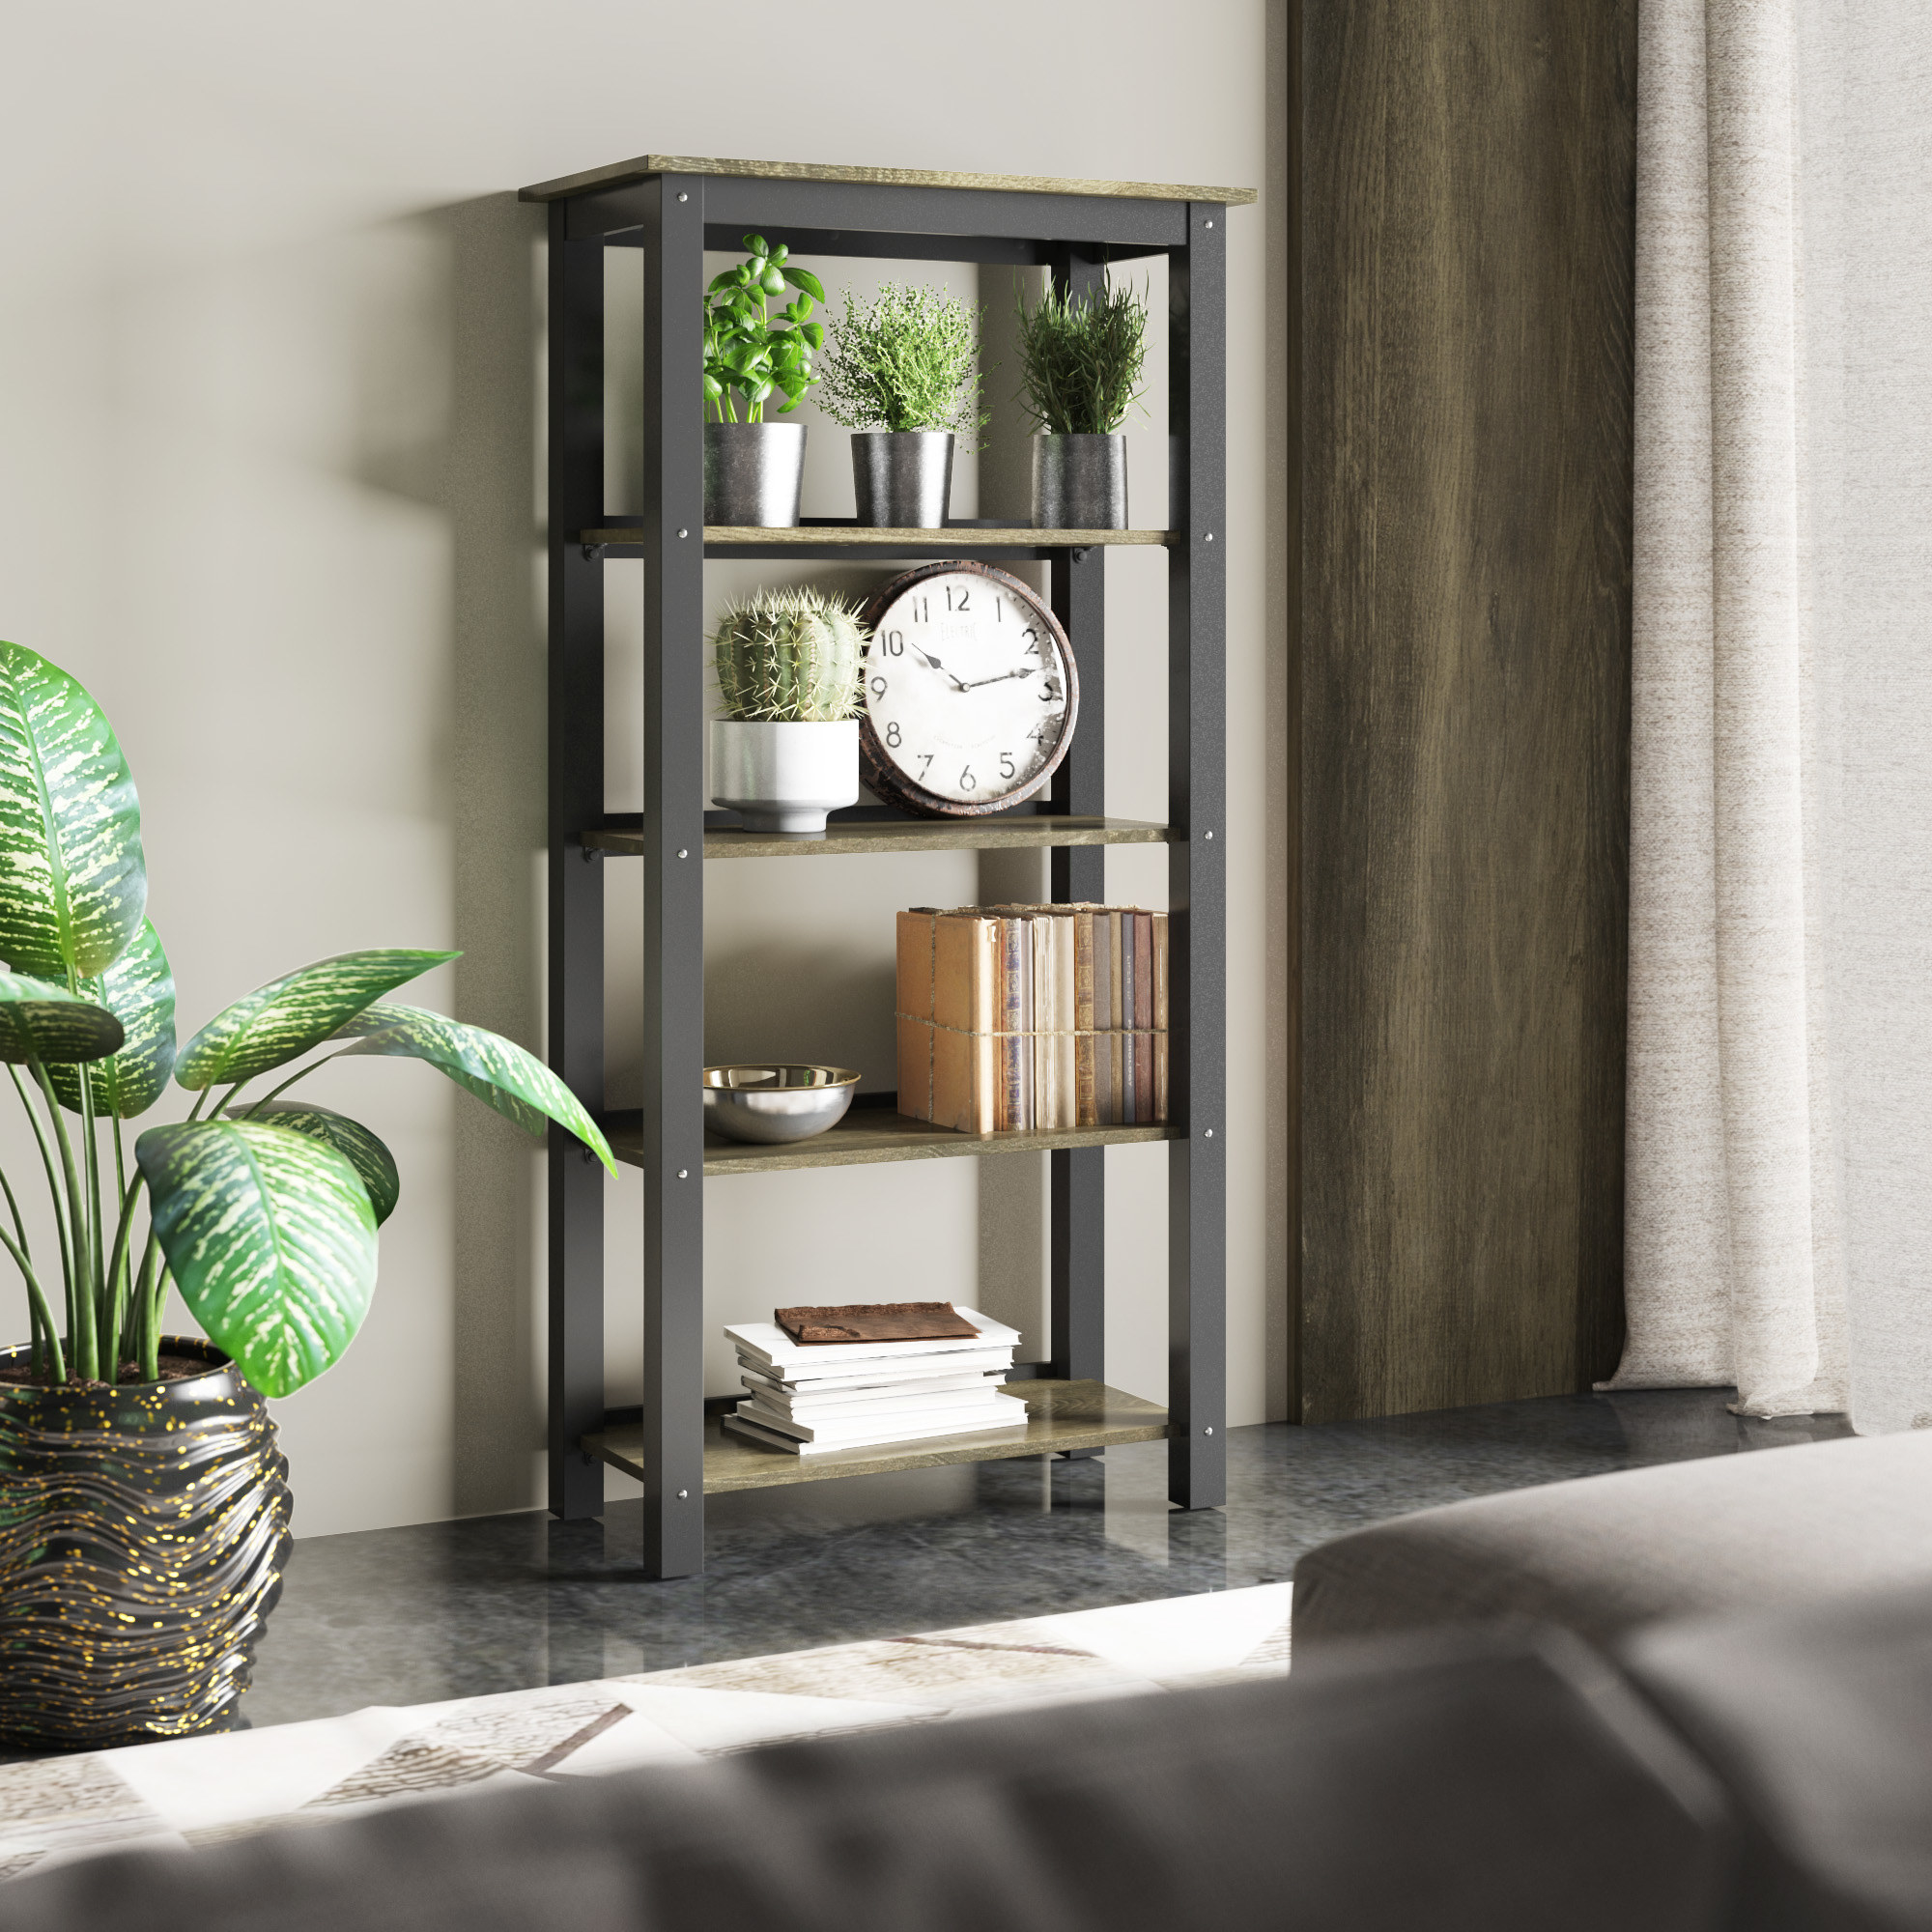 The black and tan bookshelf with decorations on it